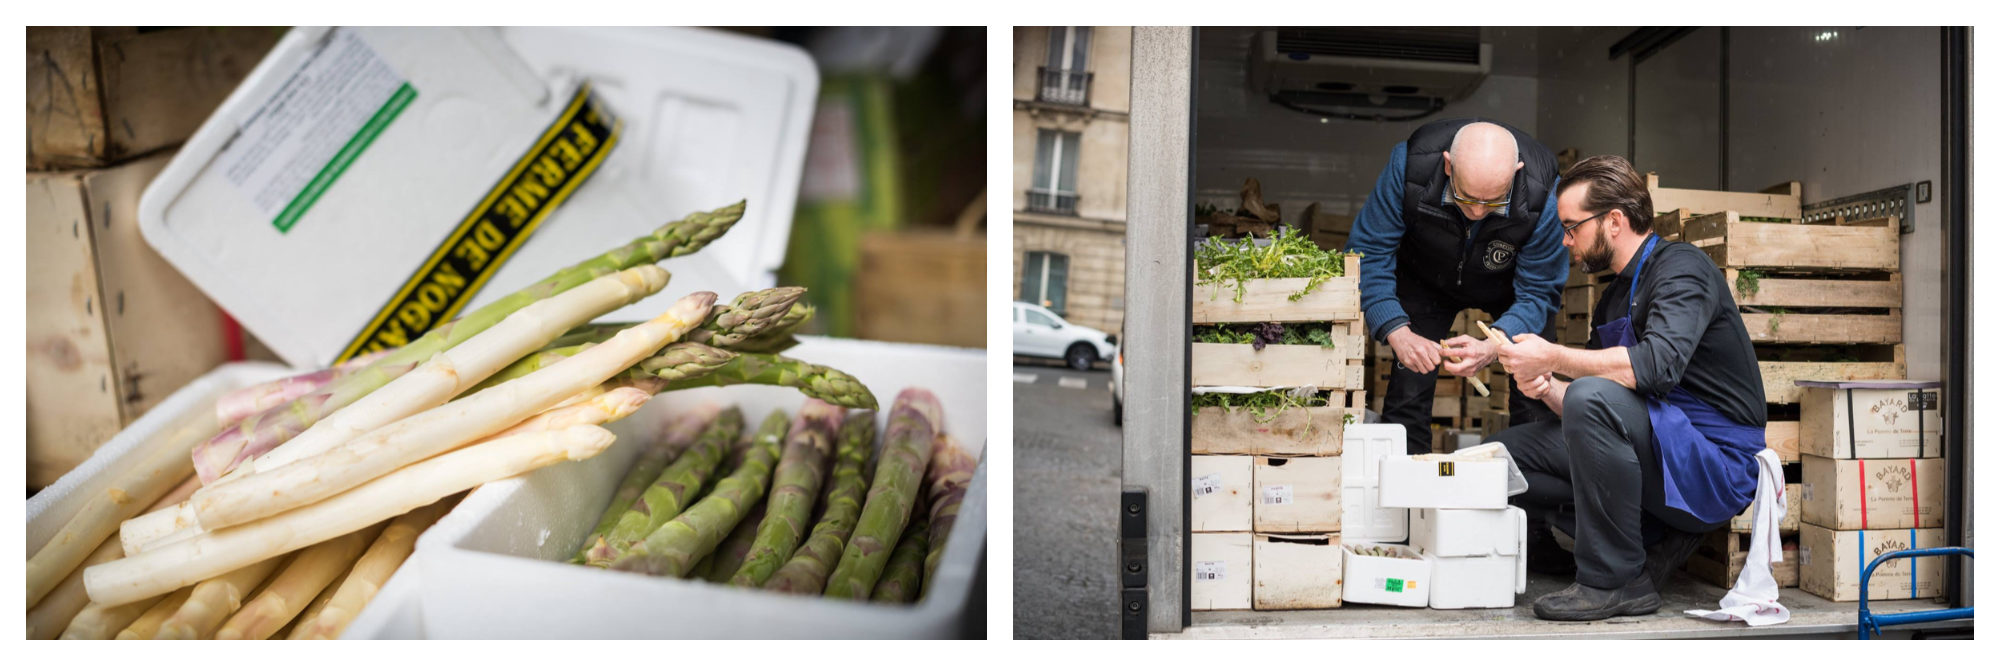 Afterwork des Producteurs, where visitors can enjoy drinks and locally sourced produce like asparagus (left) and other farm-fresh veggies (right).